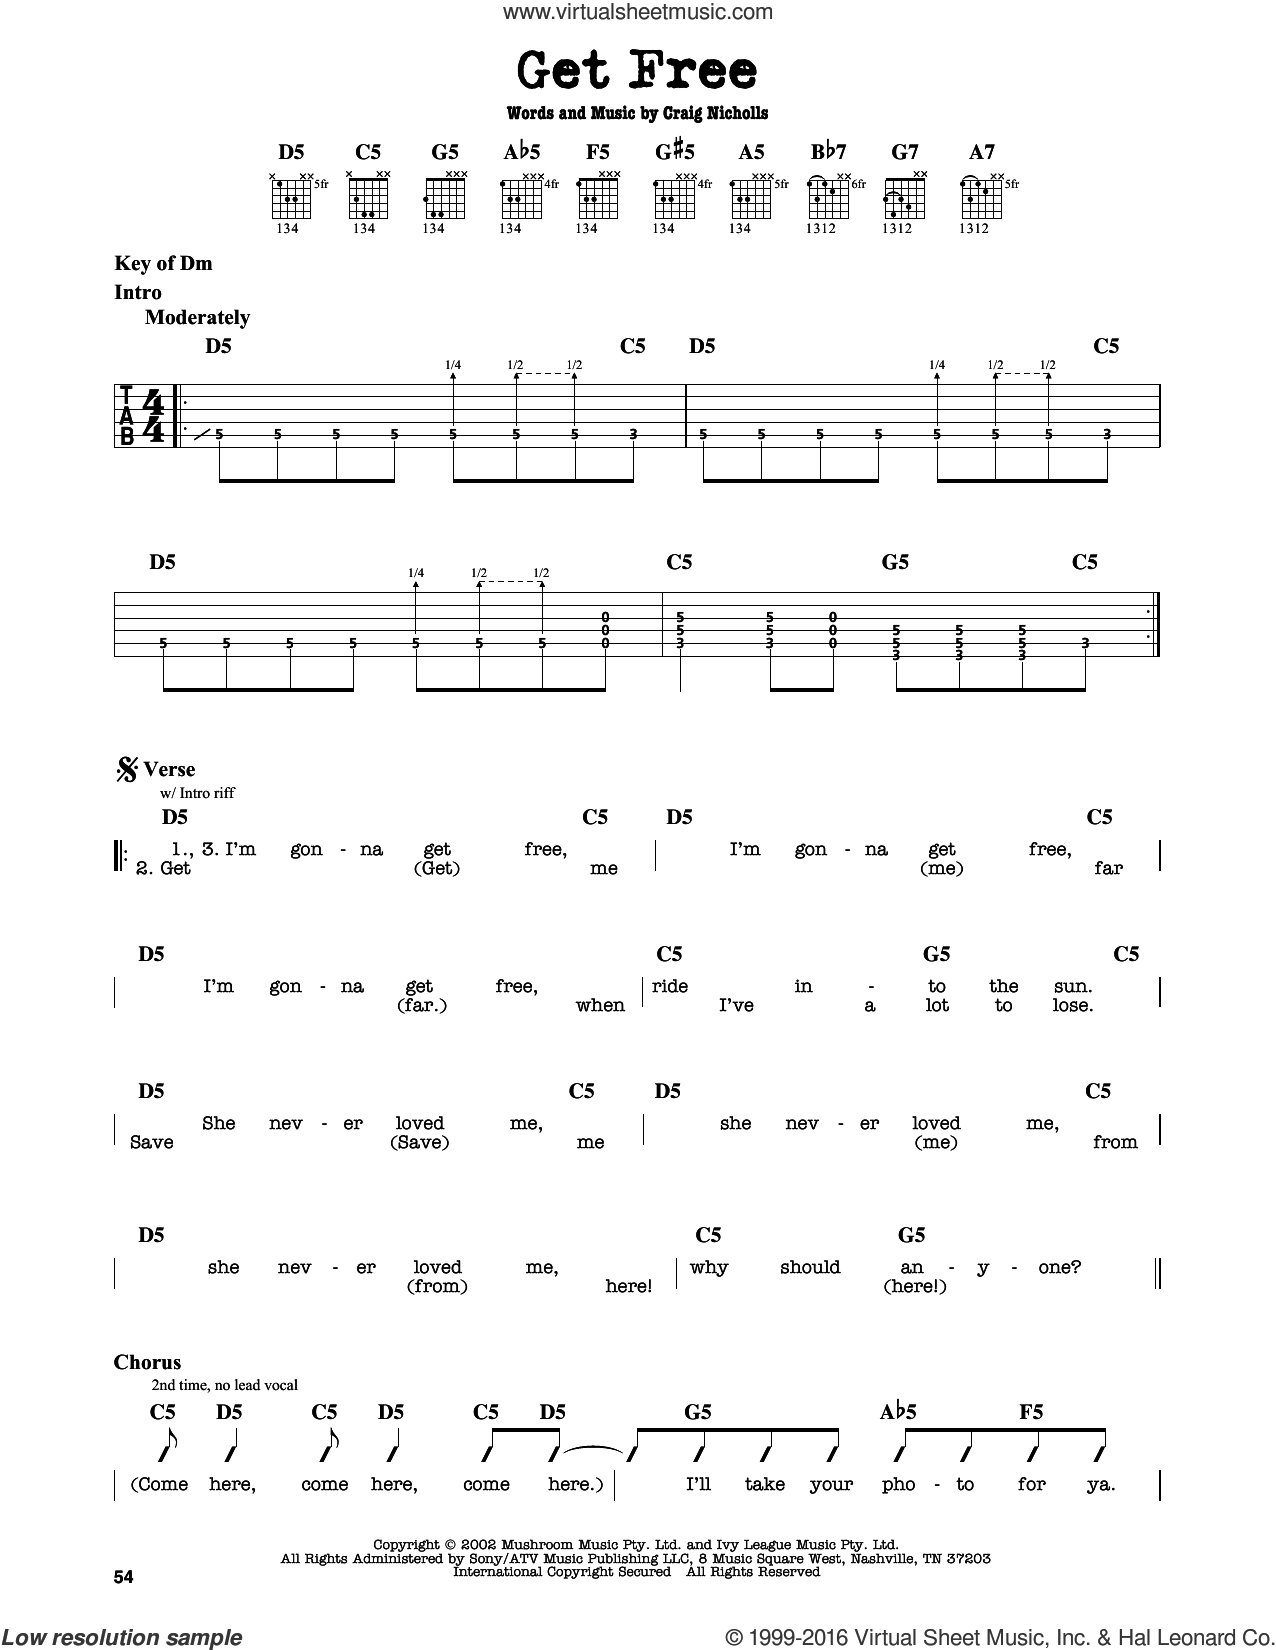 Get Free sheet music for guitar solo (lead sheet) by Craig Nicholls